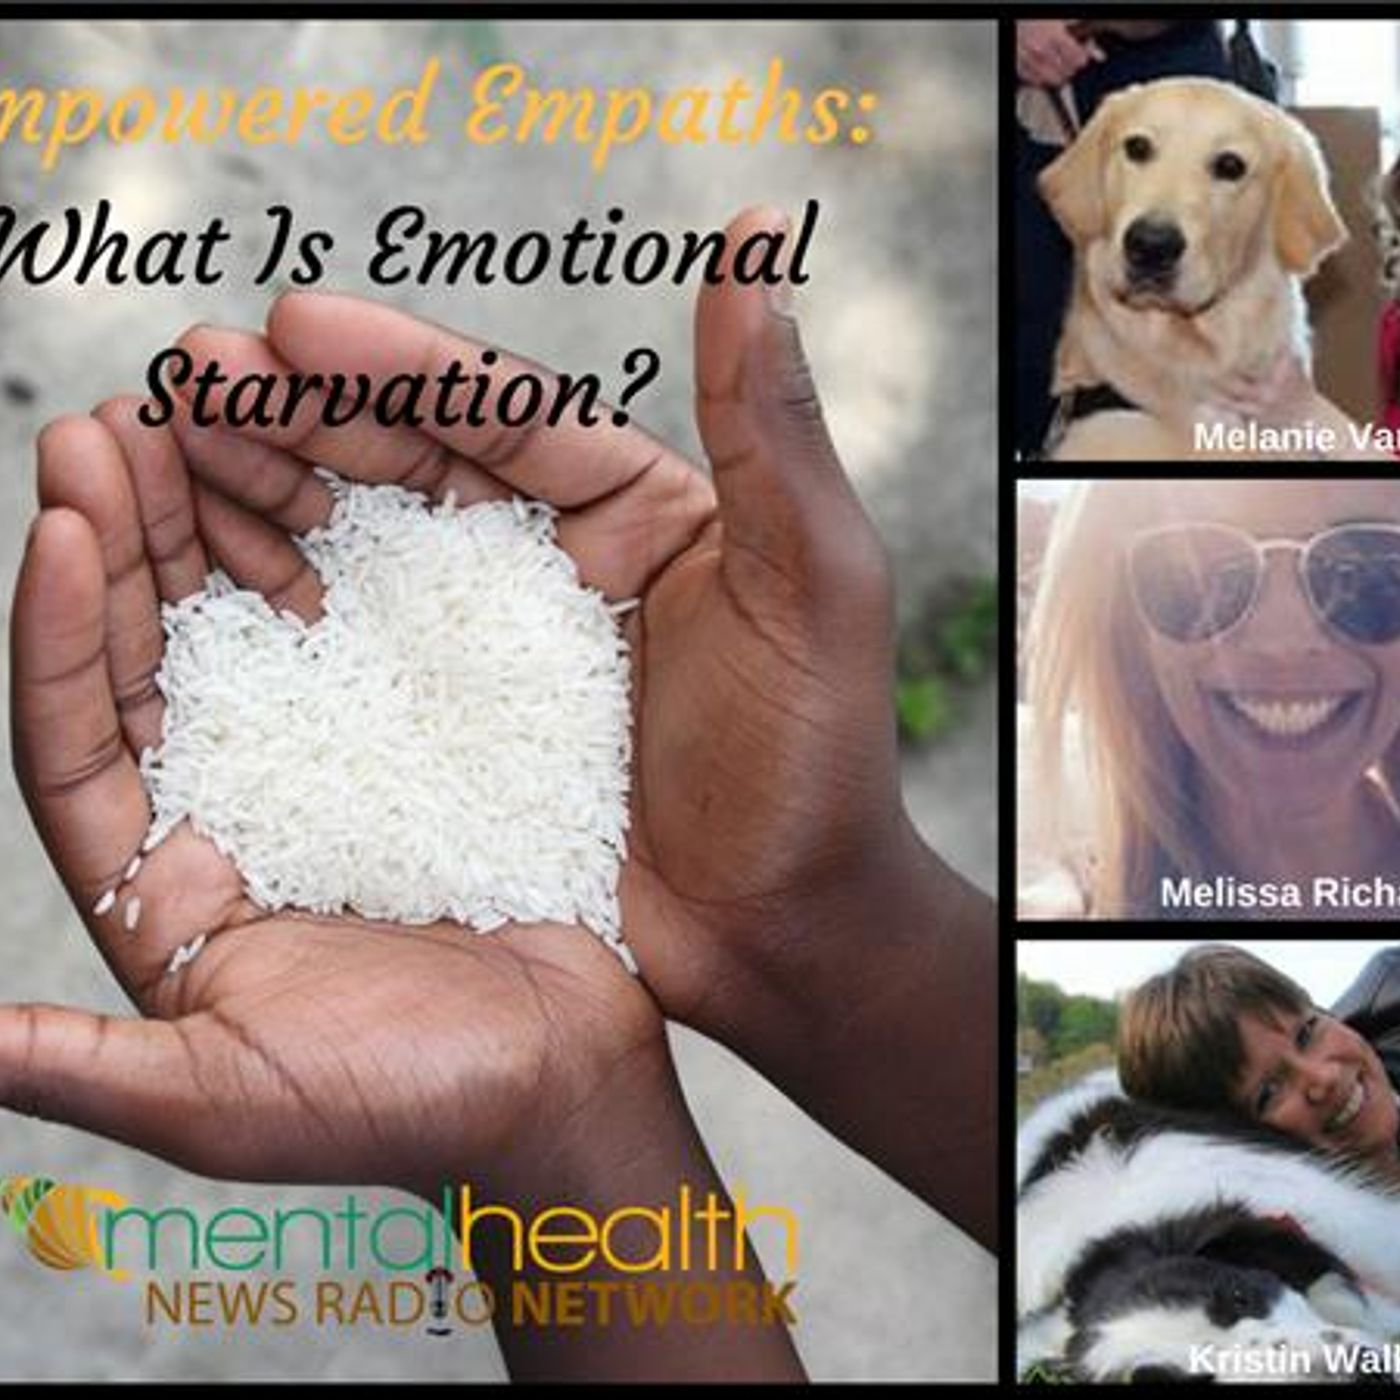 Mental Health News Radio - Empowered Empaths: What Is Emotional Starvation?